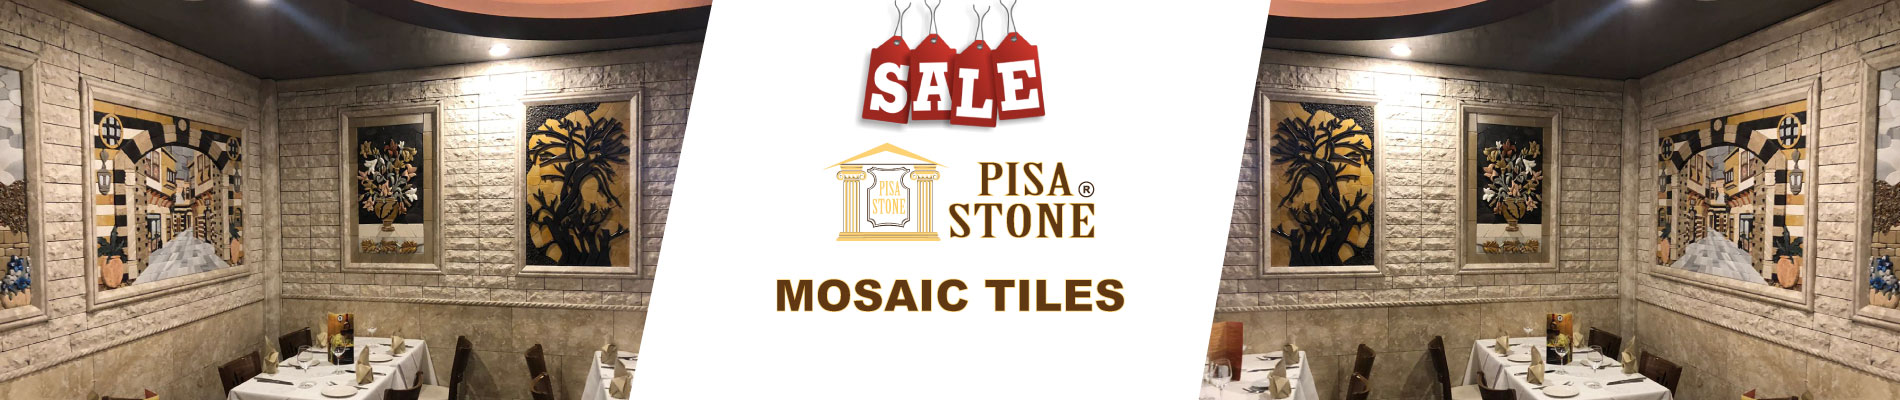 MOSAIC-TILES-Pisastone®